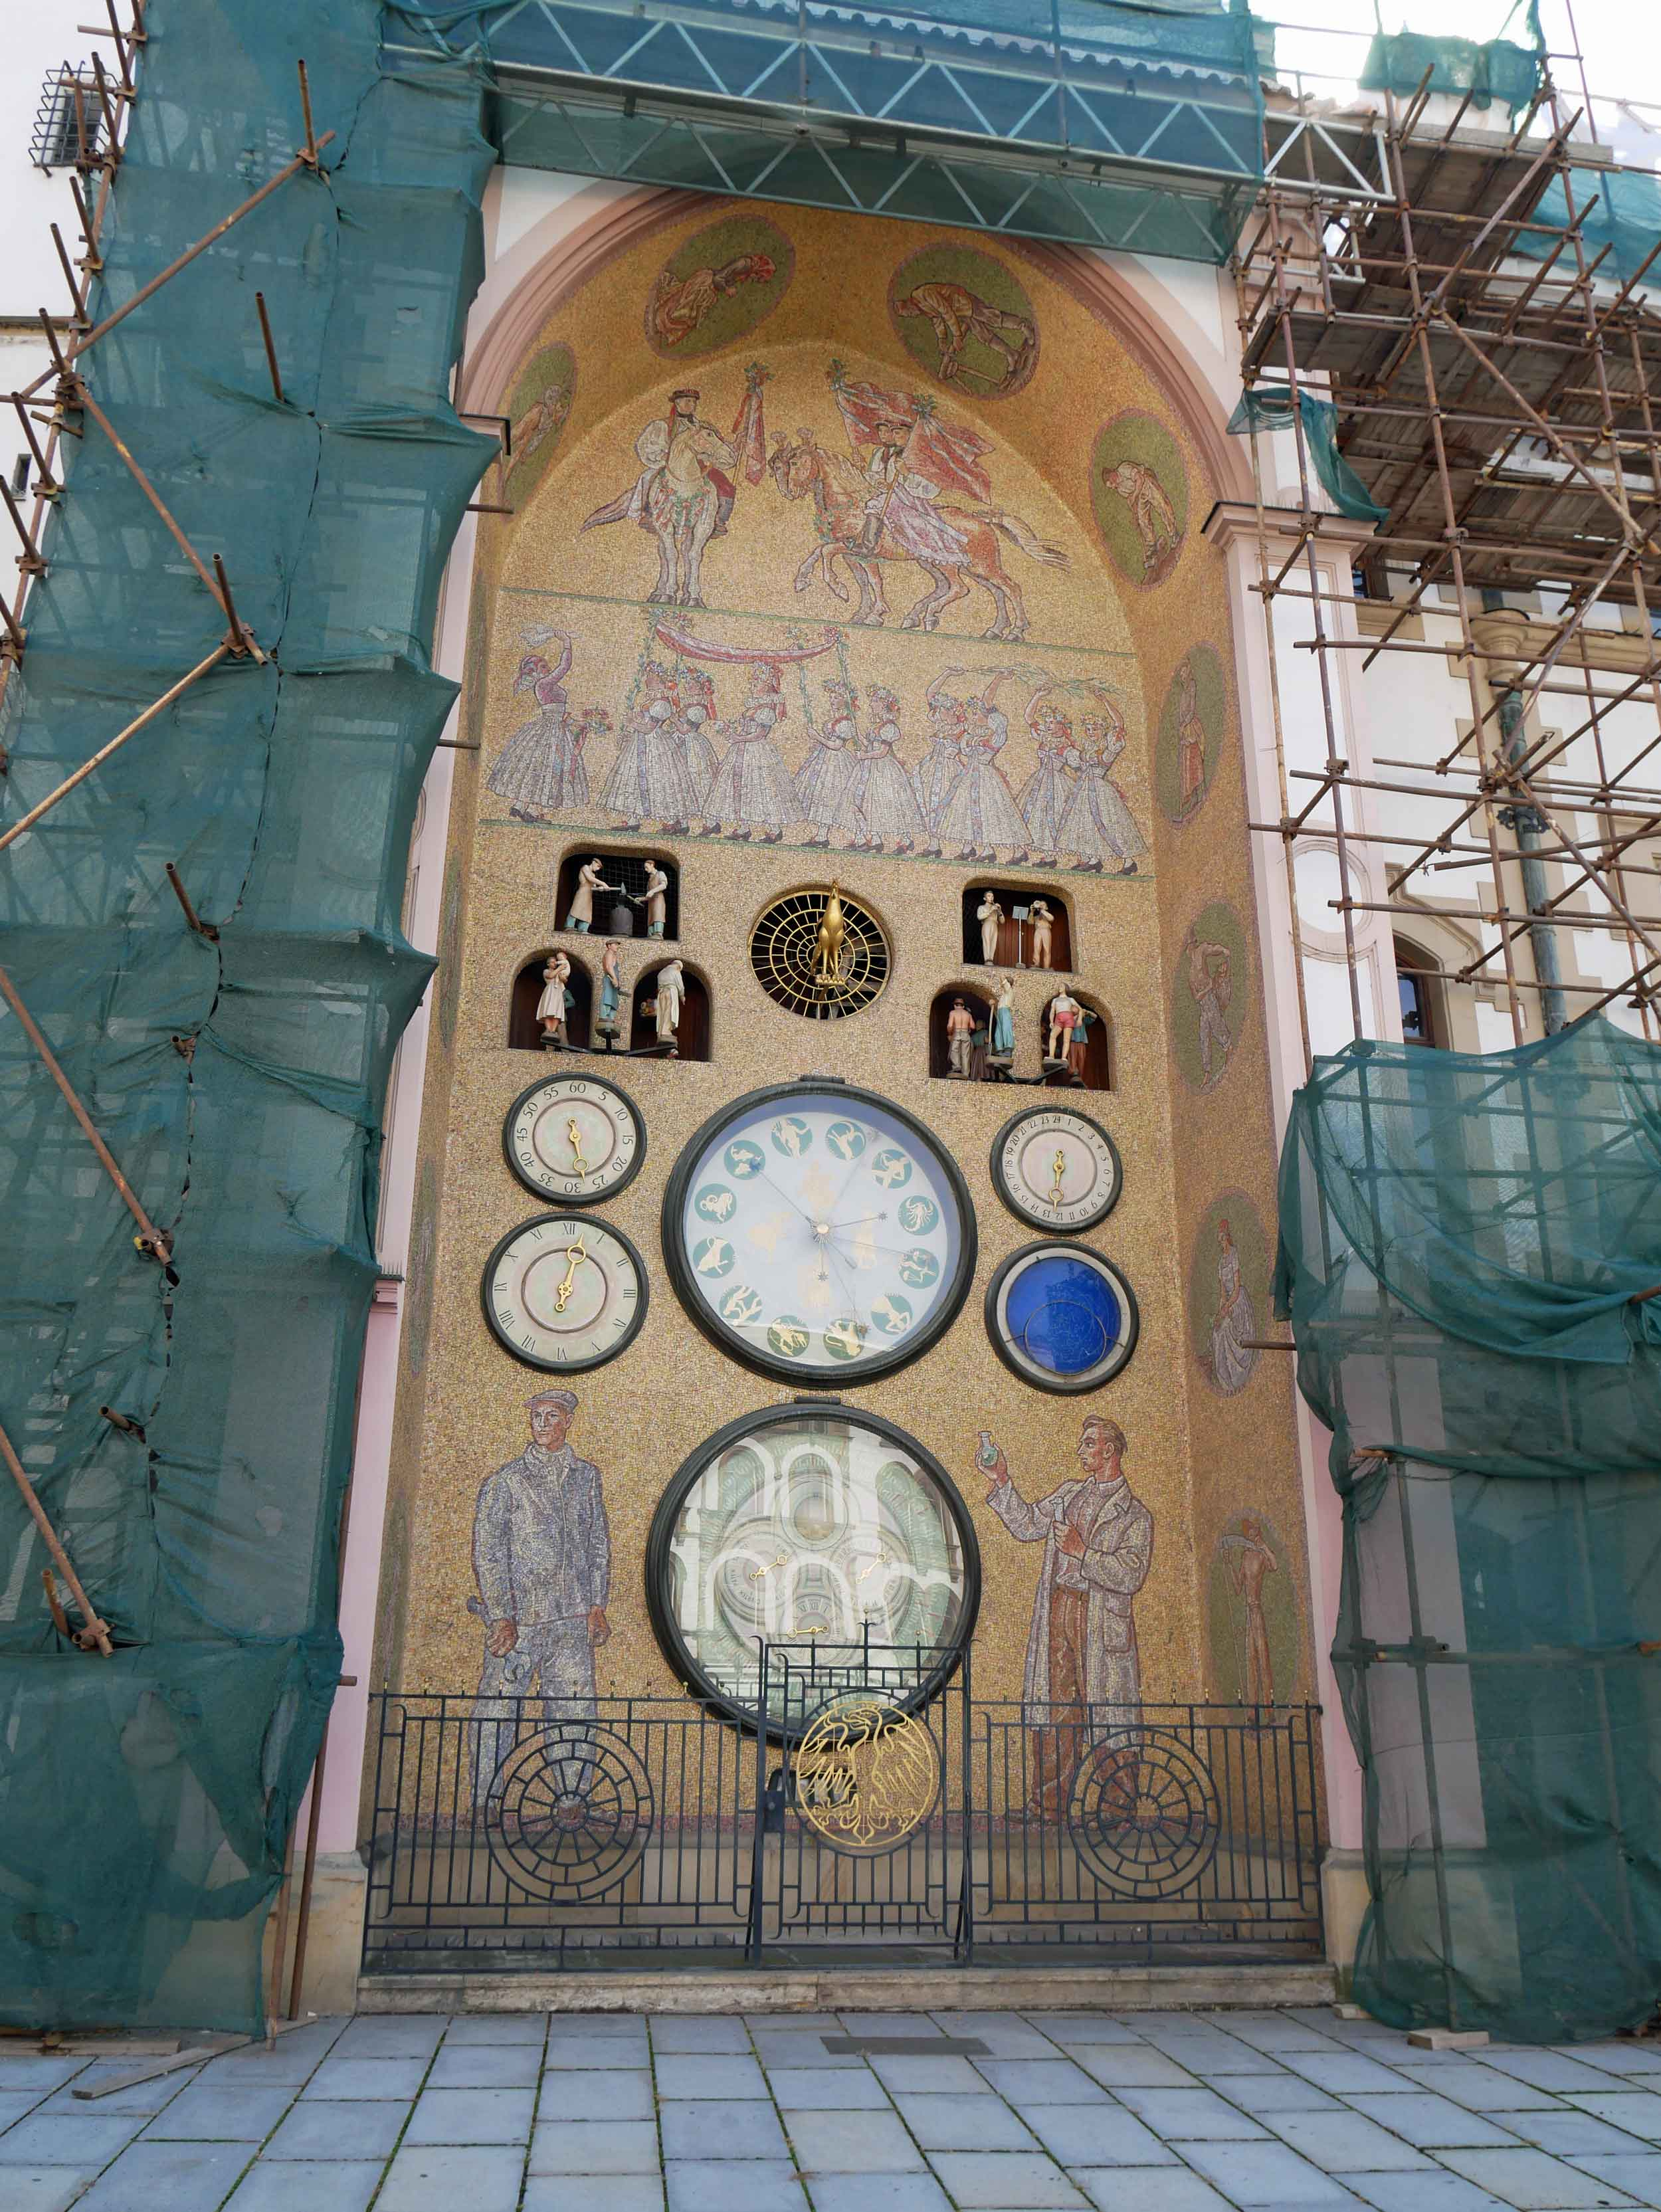 Olomouc's Astronomical Clock is quite different from it's sister clock in Prague - deemed the 'Communist Clock' for its Soviet era proletarians motif, Olomouc's original 15th century clock was destroyed by the Germans during WWII and rebuilt during communist rule.